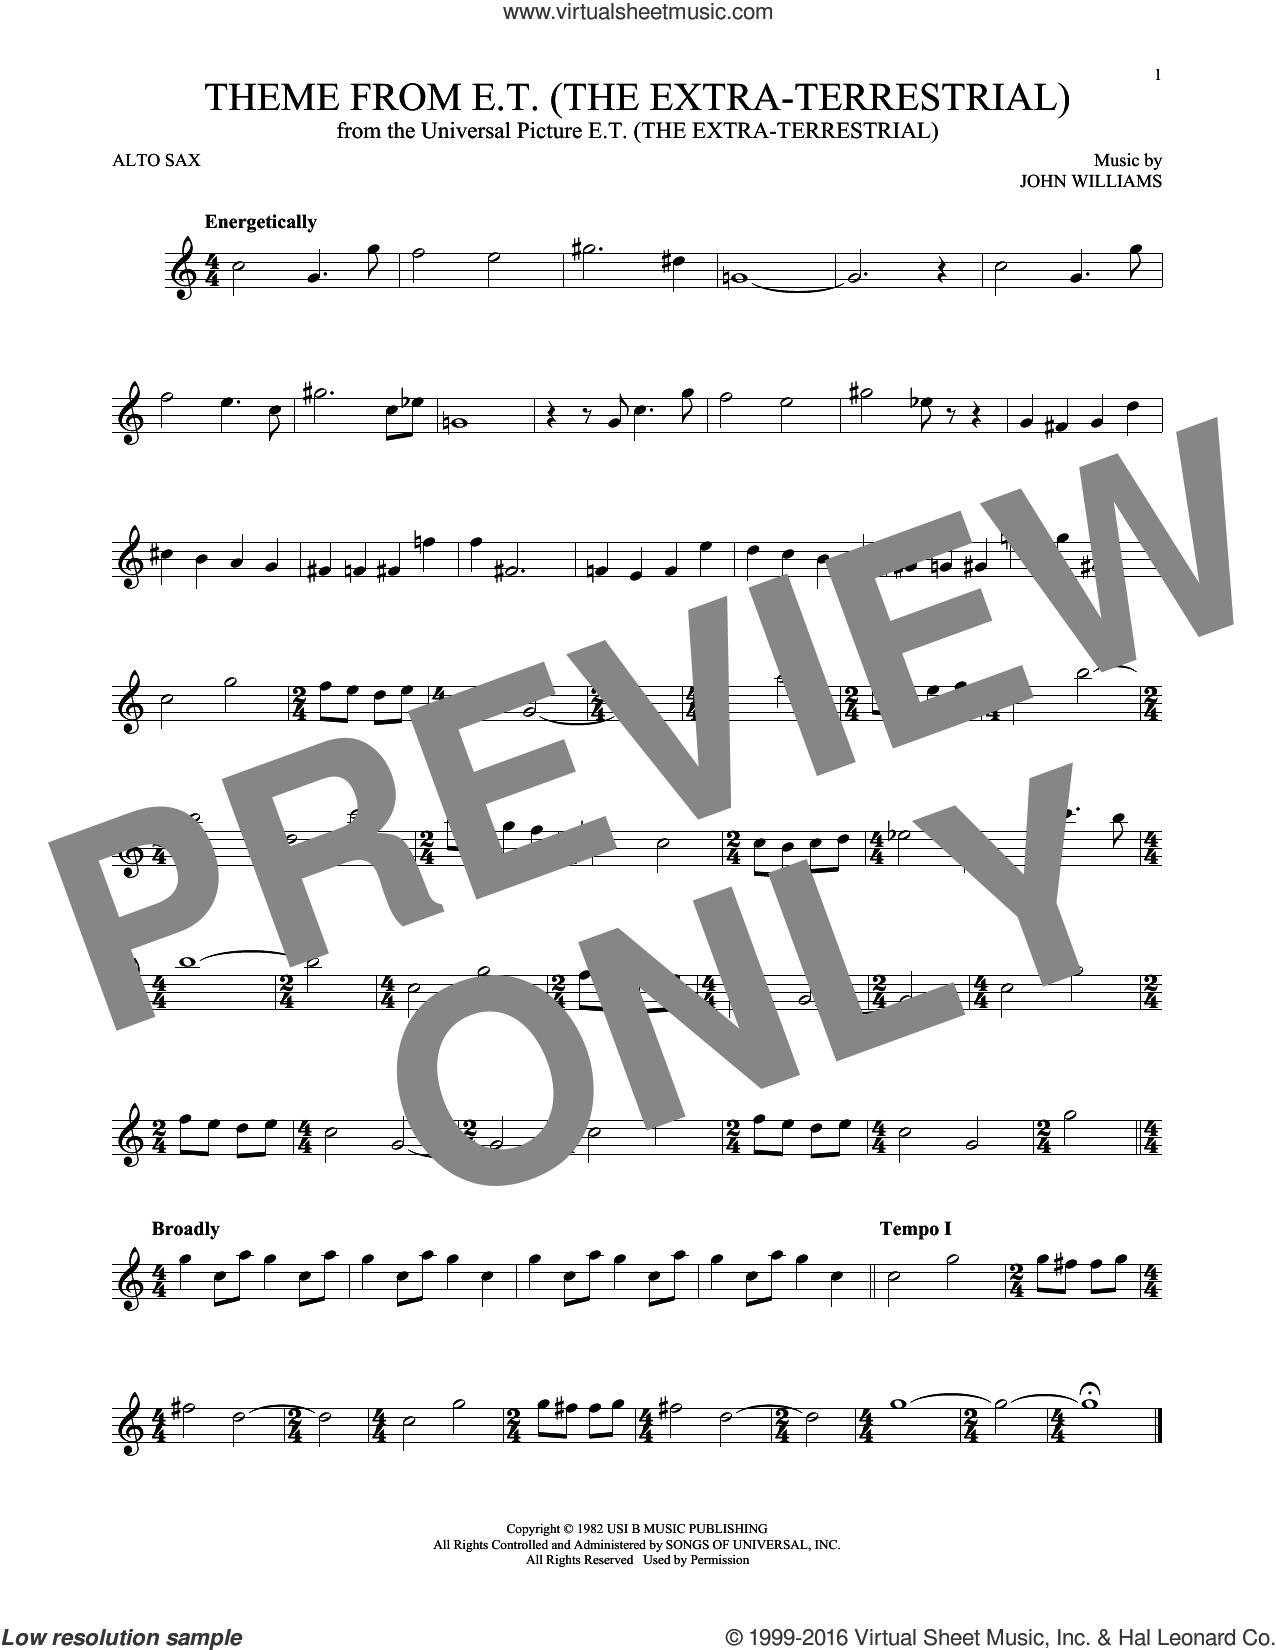 Theme From E.T. (The Extra-Terrestrial) sheet music for alto saxophone solo by John Williams, intermediate skill level